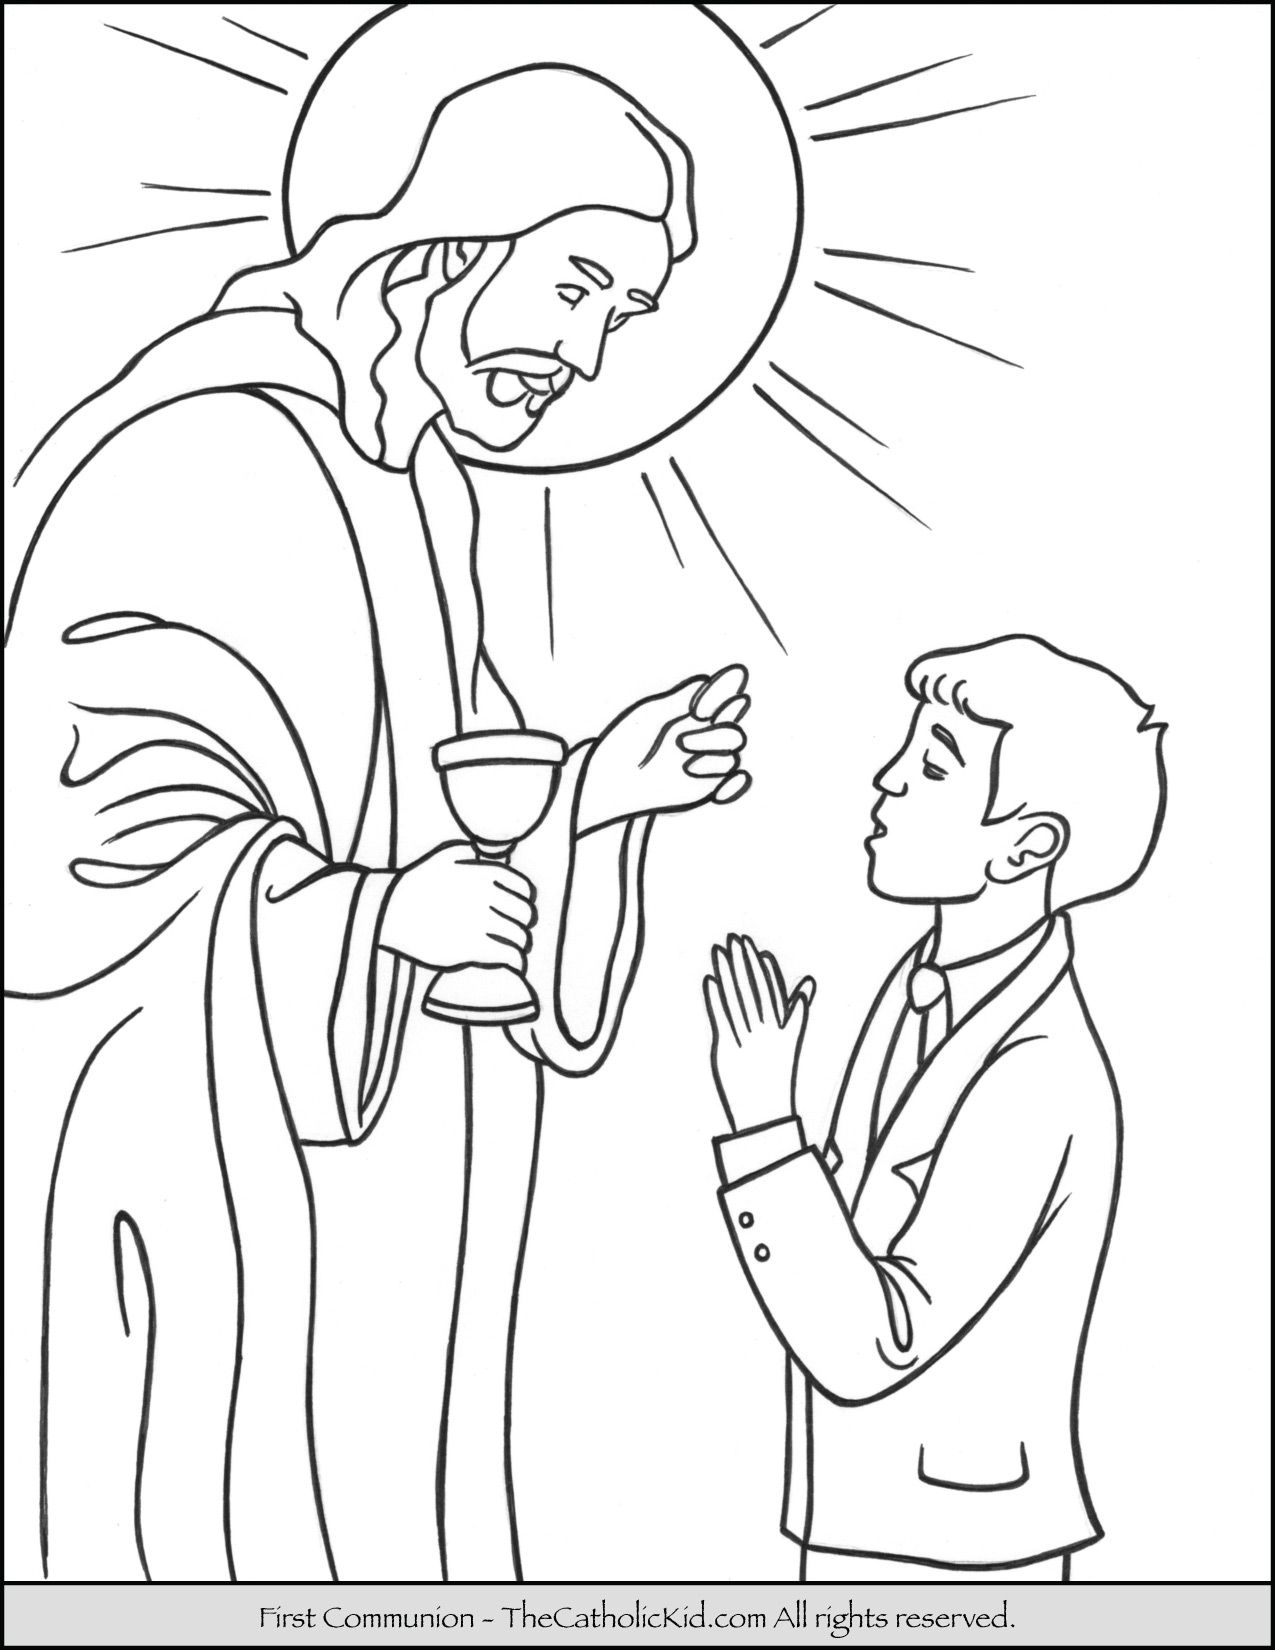 First Communion Boy Coloring Page Thecatholickid Com Catholic